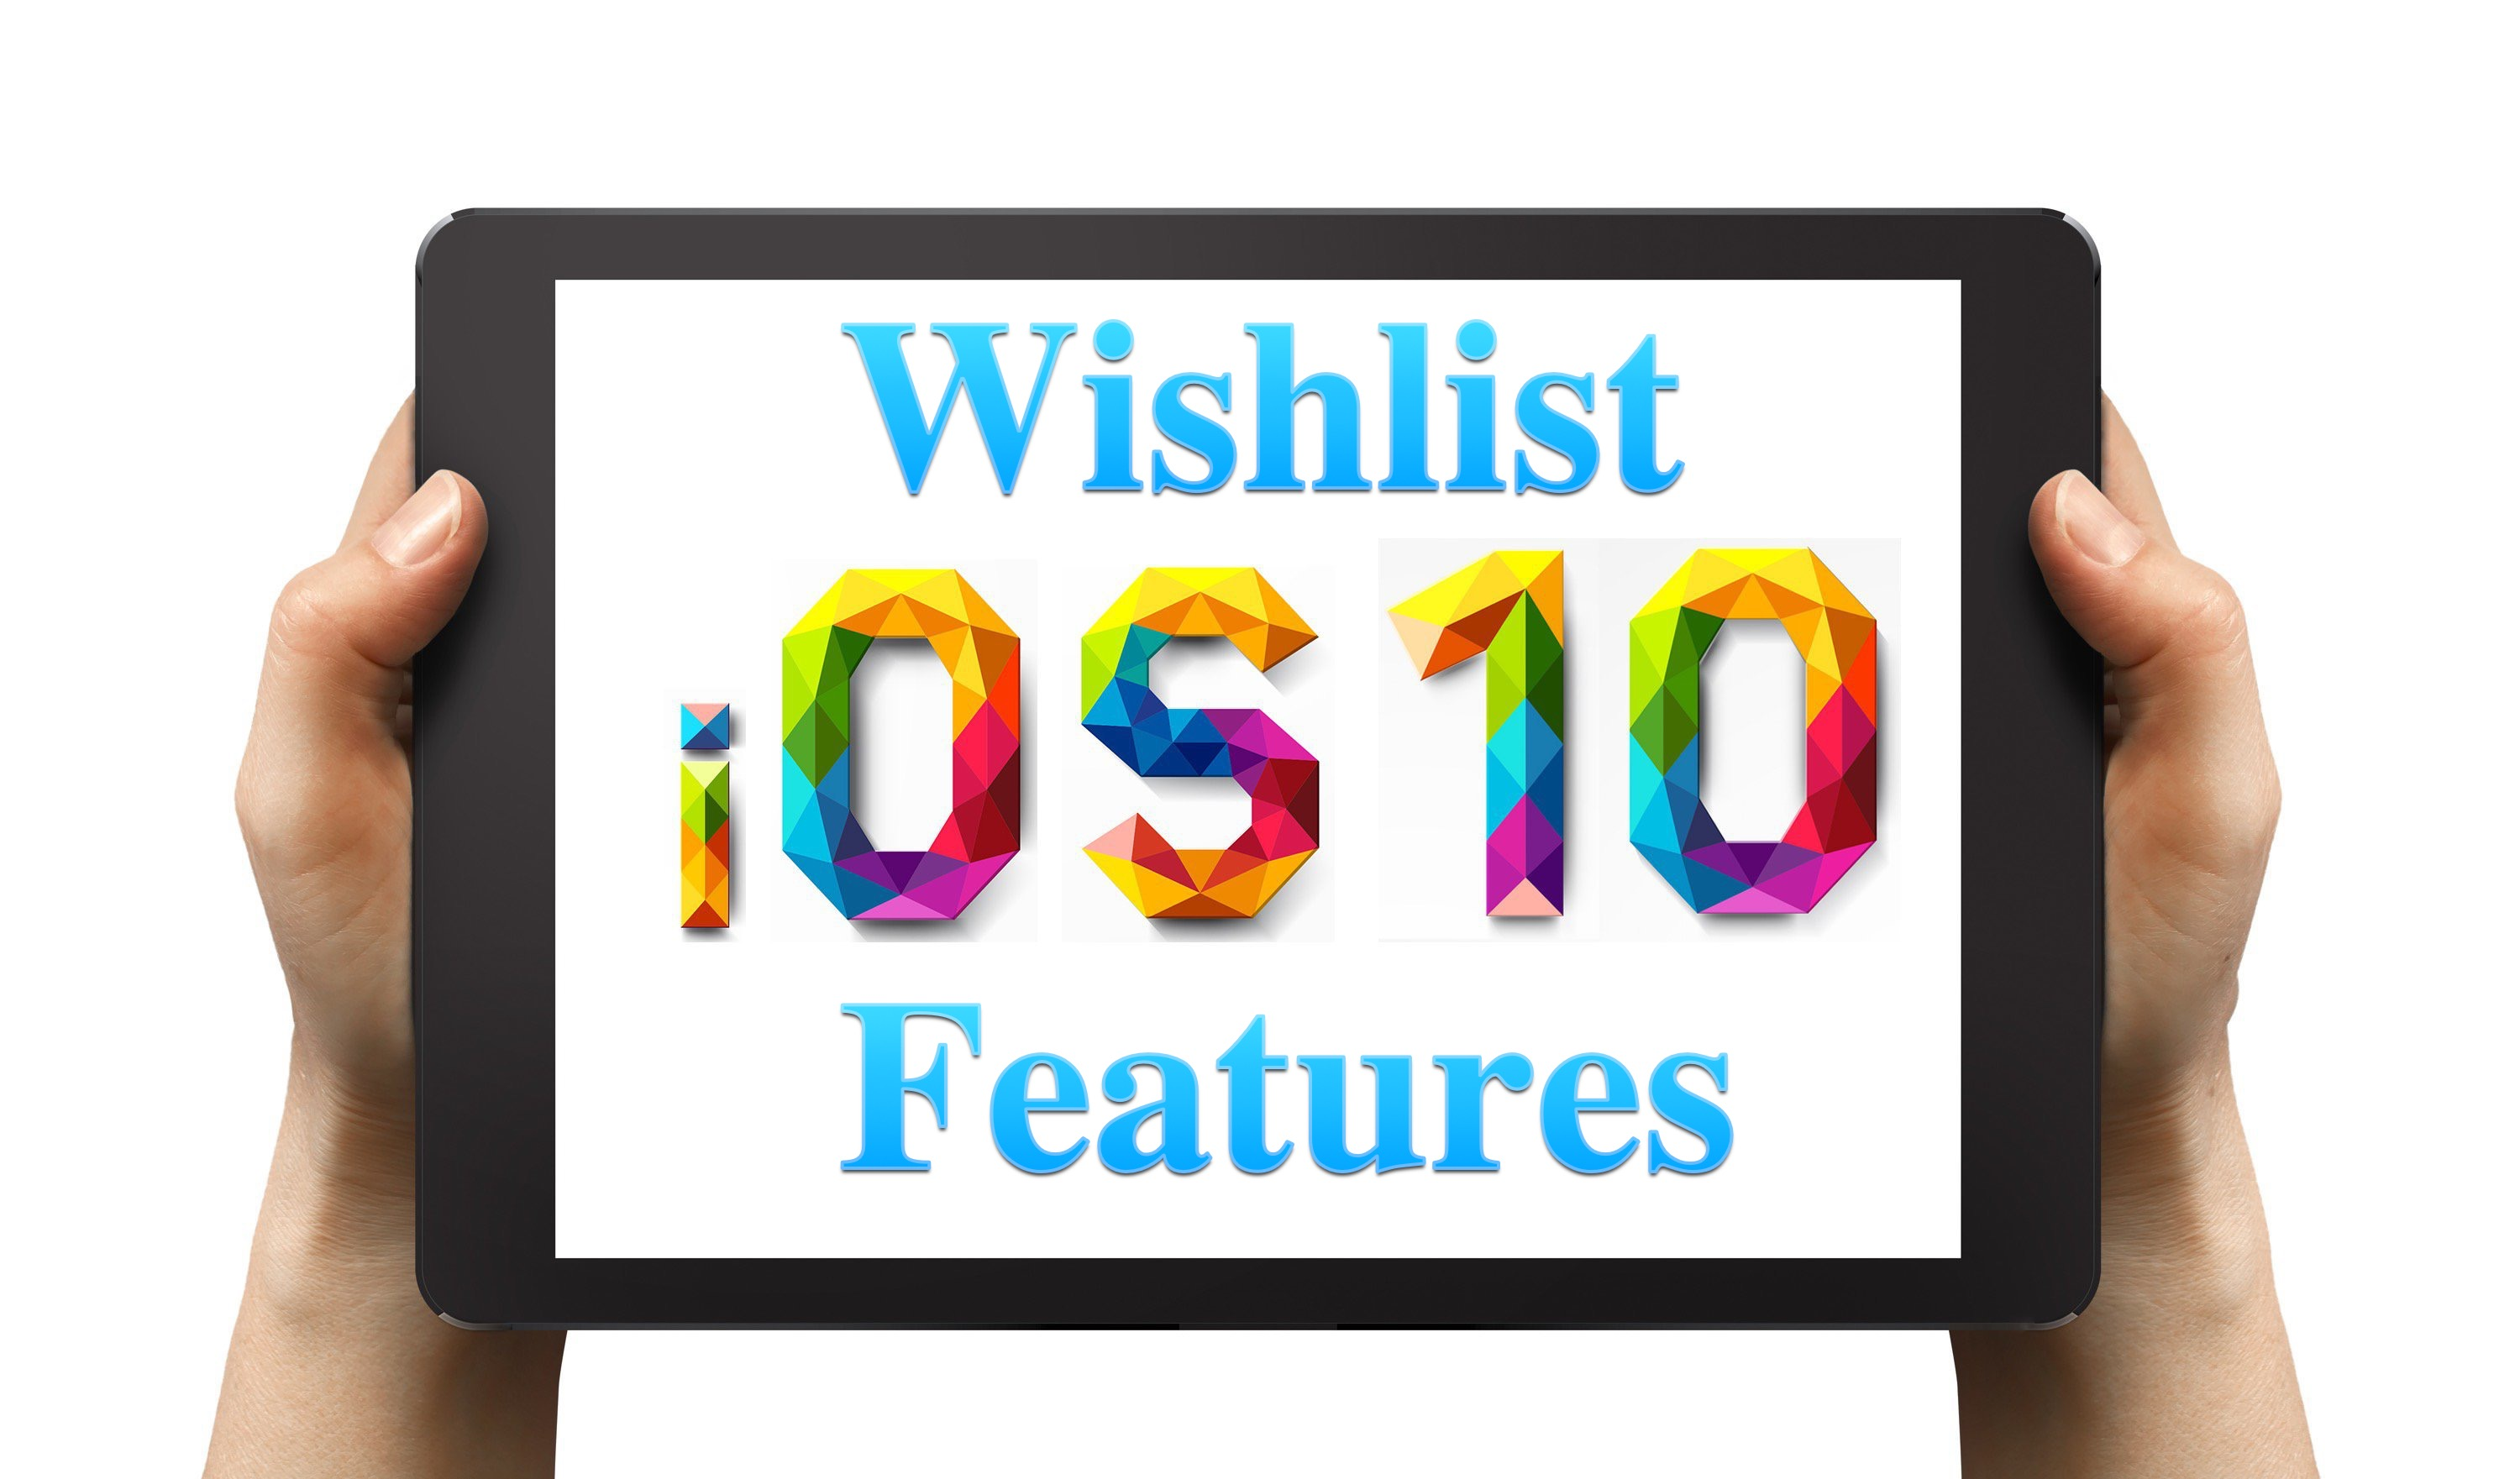 8 iOS 10 Features We Still Want for iPhone & iPad